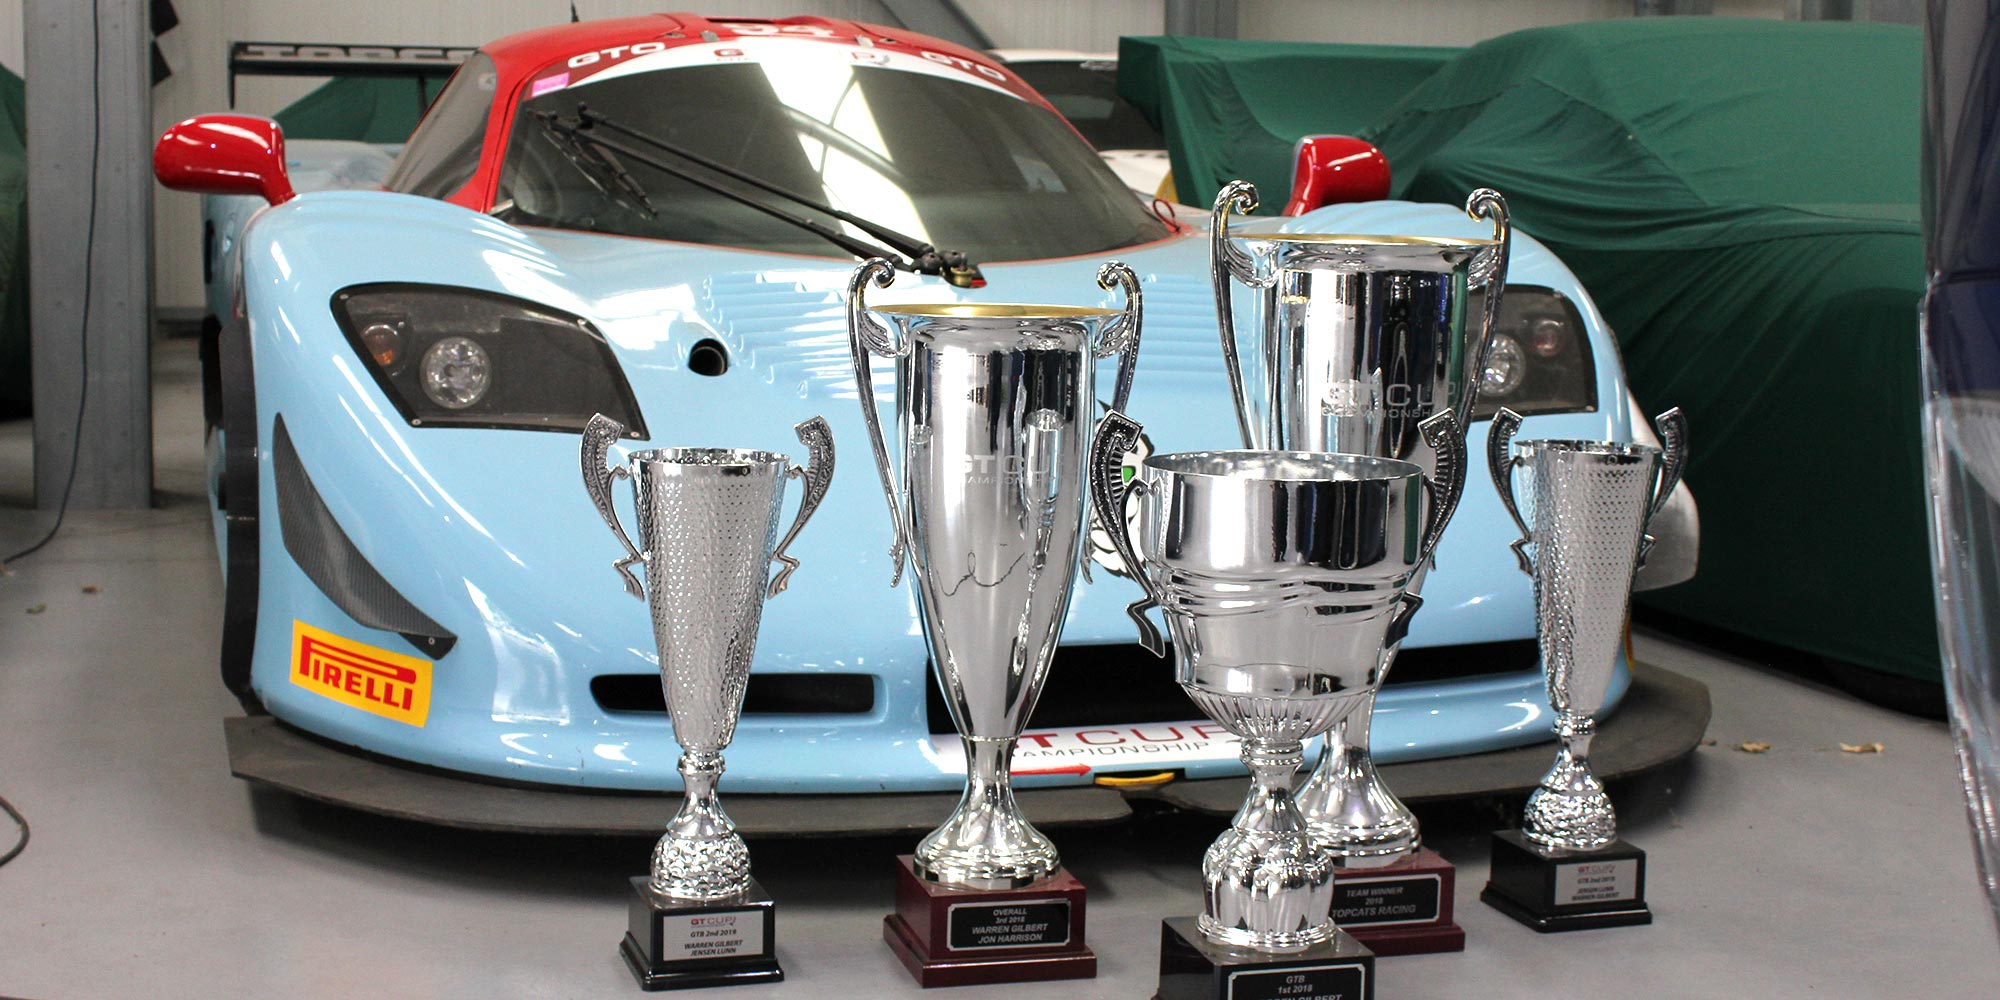 cluster of trophies in front of mosler mt900